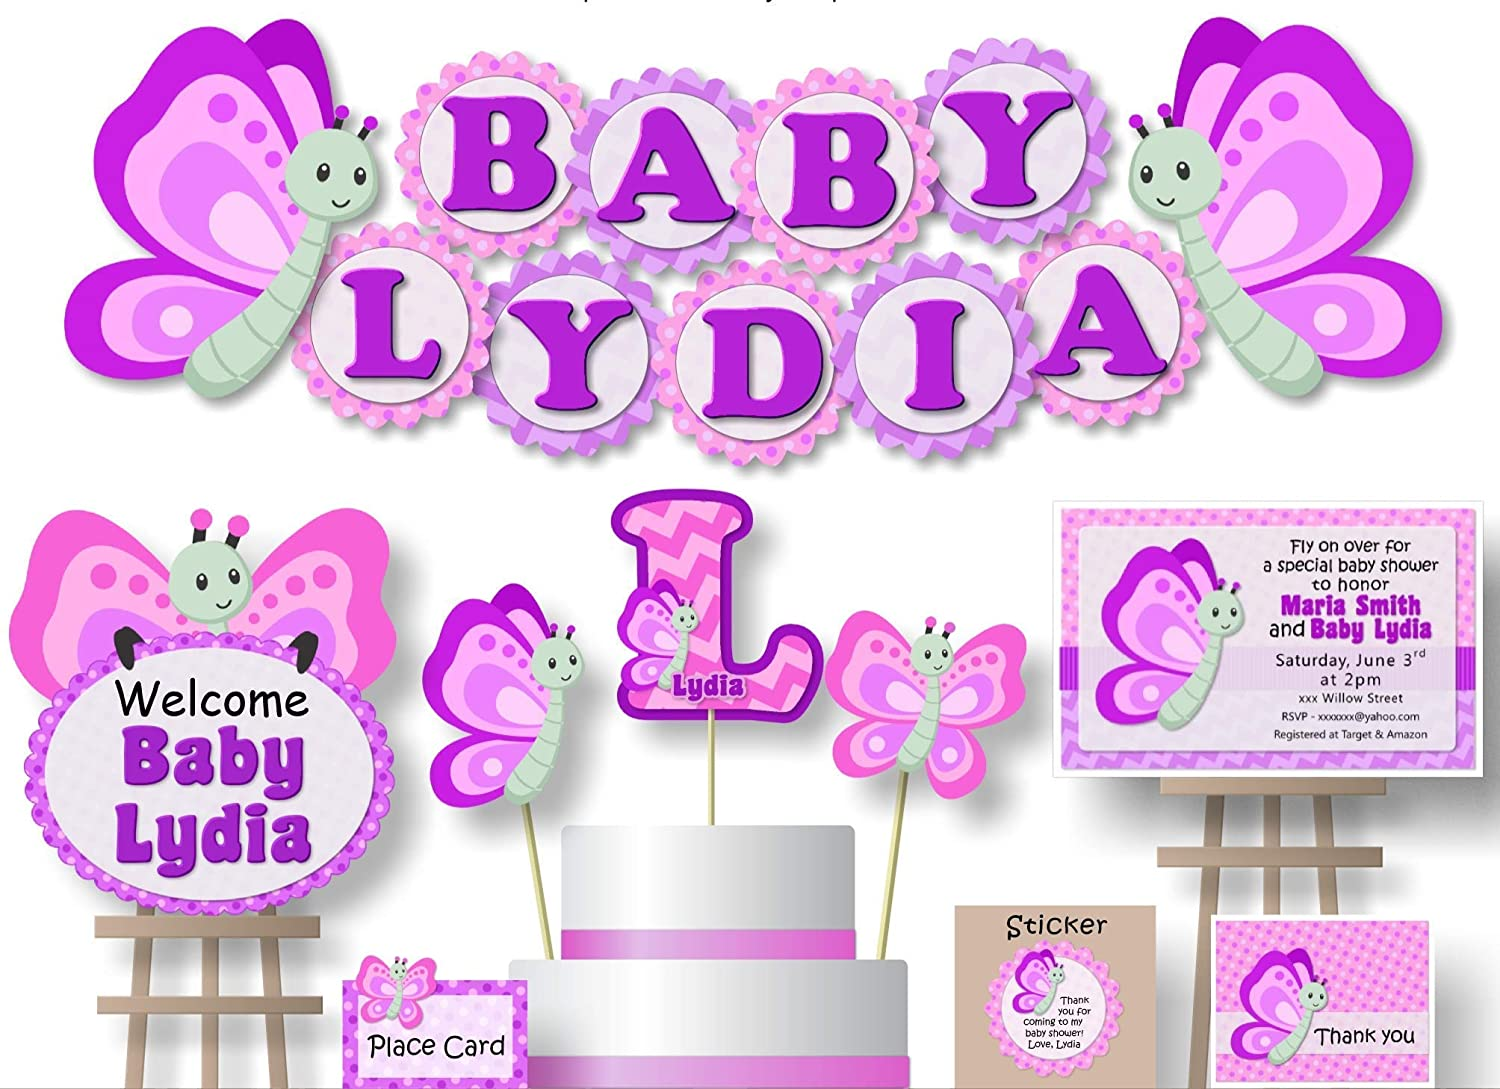 Amazon Com Personalized Pink Lavendar Butterfly Baby Shower Decorations For Girl Banner With Optional Cake Topper Centerpiece Welcome Sign Favor Tags Or Stickers Thank Yous Handmade In Usa Bcpcustom Handmade